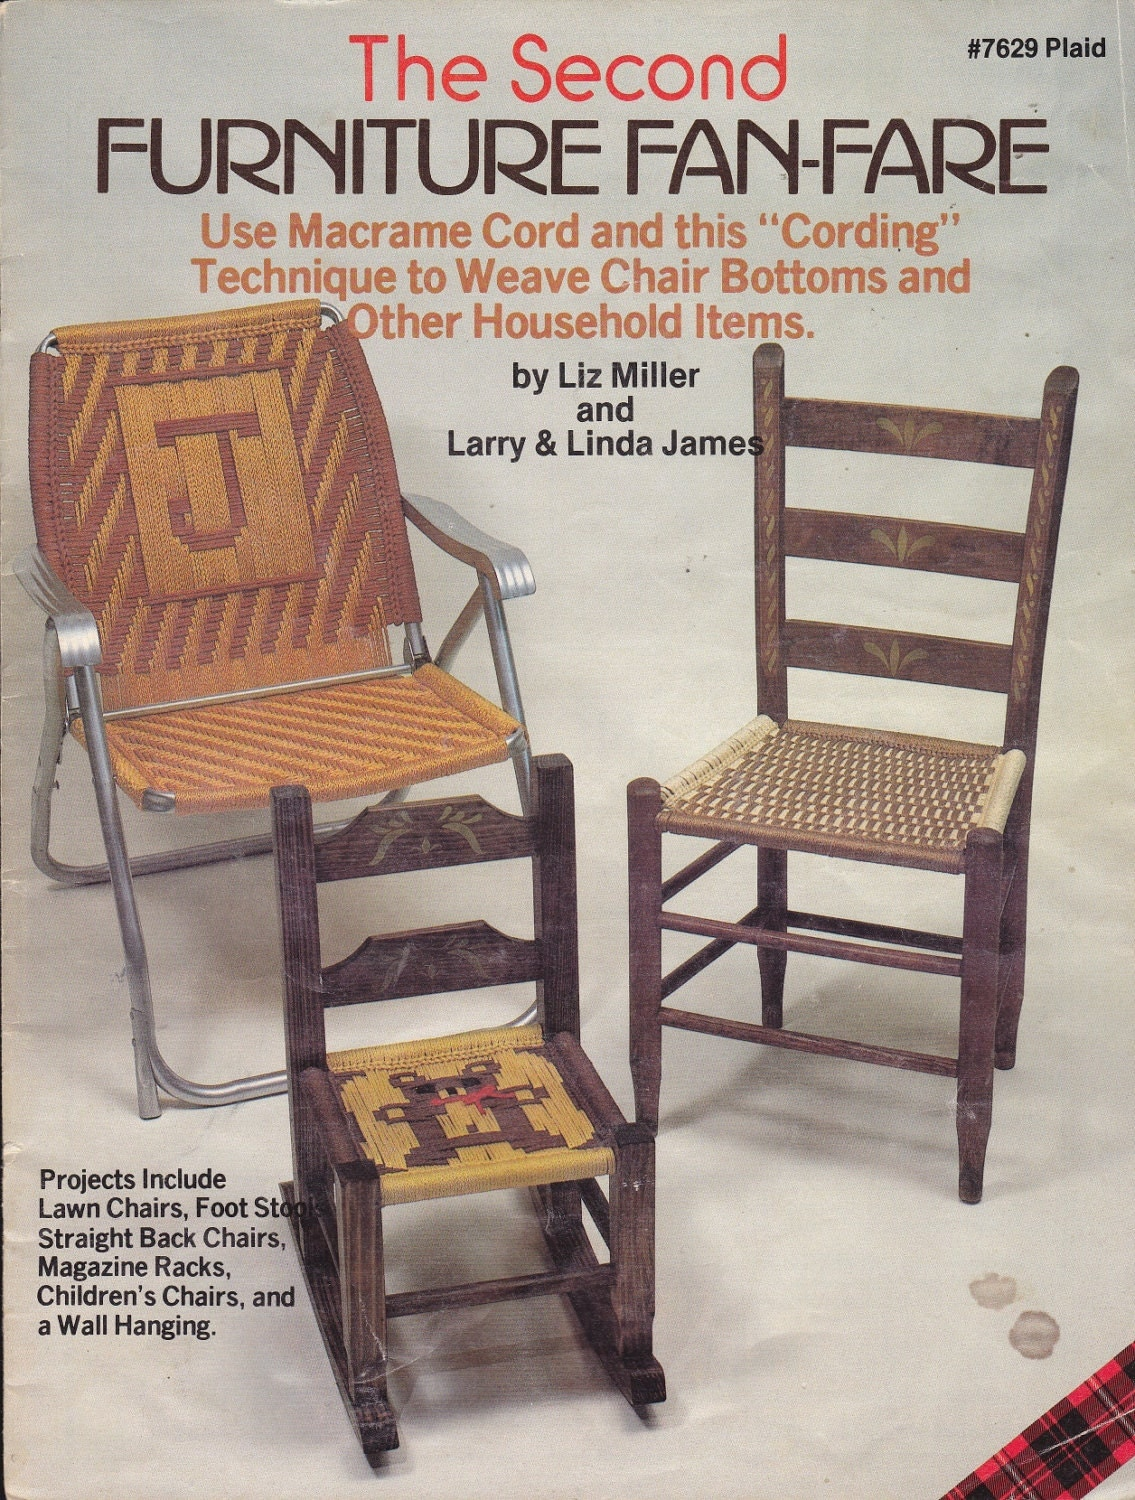 macrame lawn chair multipurpose gym pattern cord weaving for chairs and other household